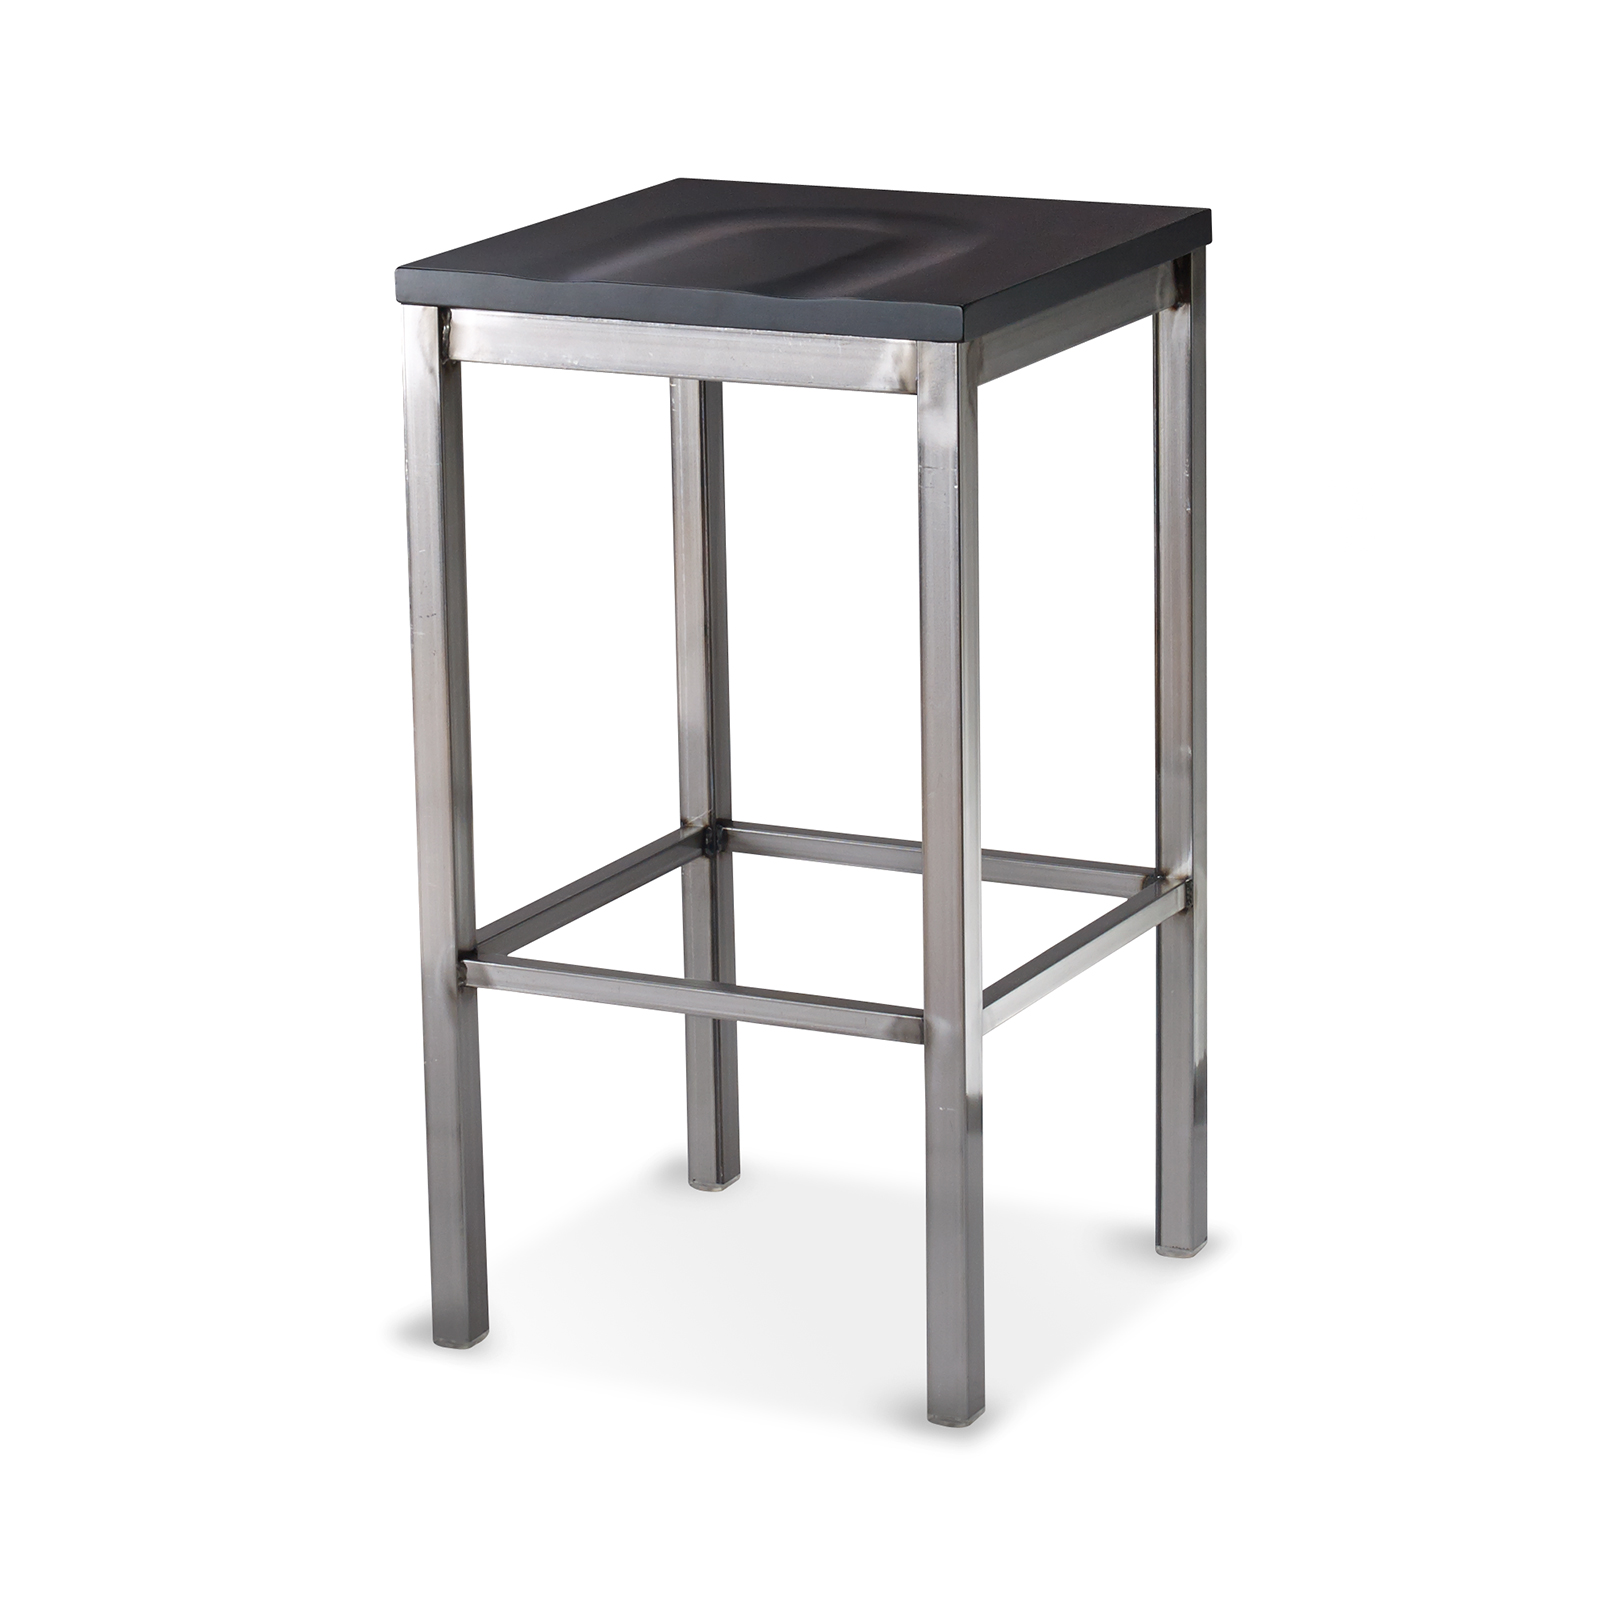 G & A Commercial Seating 713-D SS bar stool, indoor